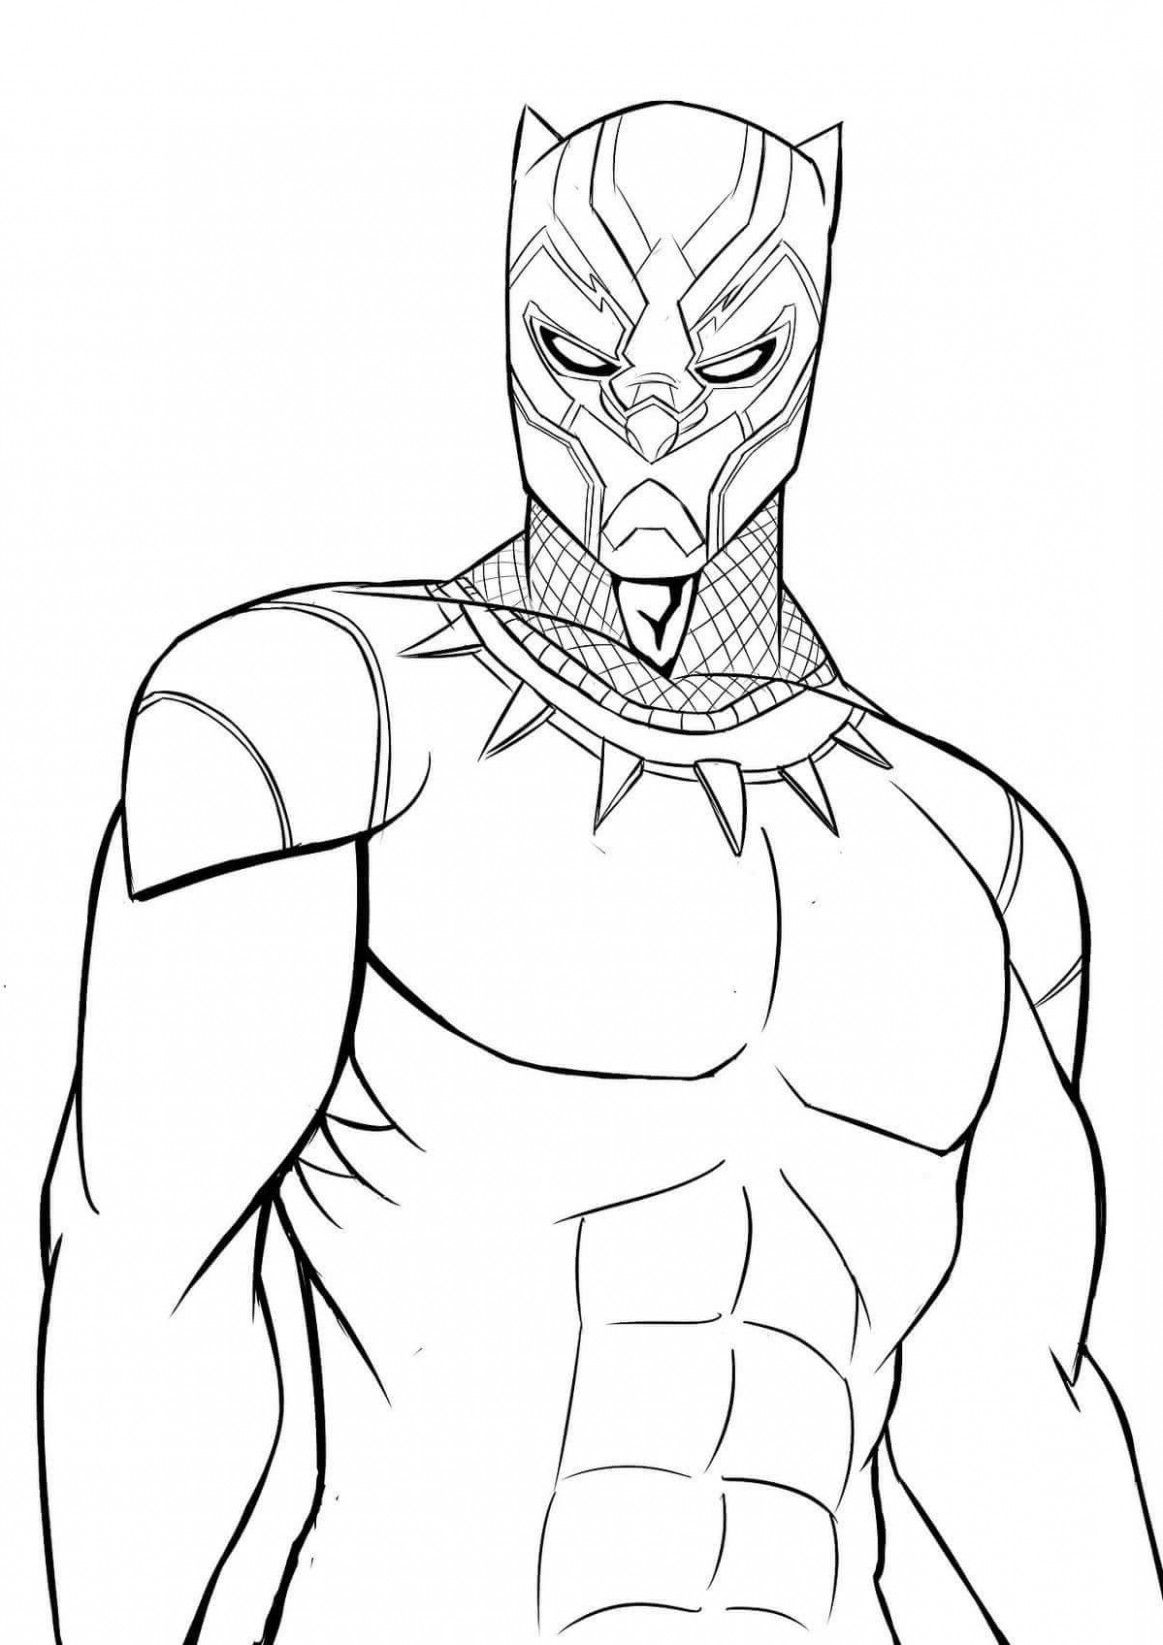 How You Can Attend Black Panther Coloring Pages With